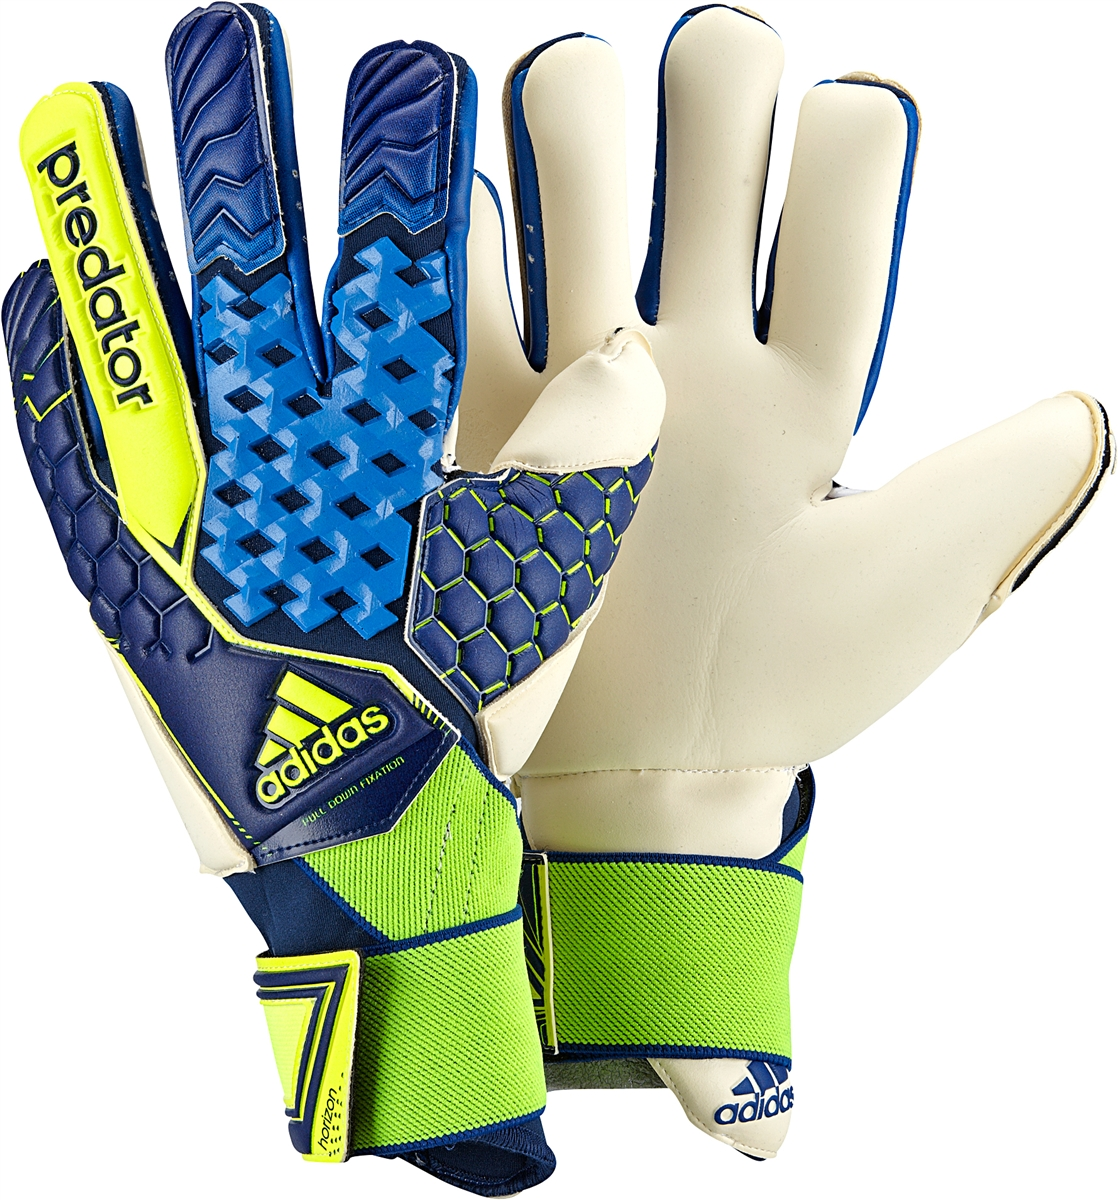 Soccer Goalie Gloves Viewing Clipart Panda Free Clipart Images